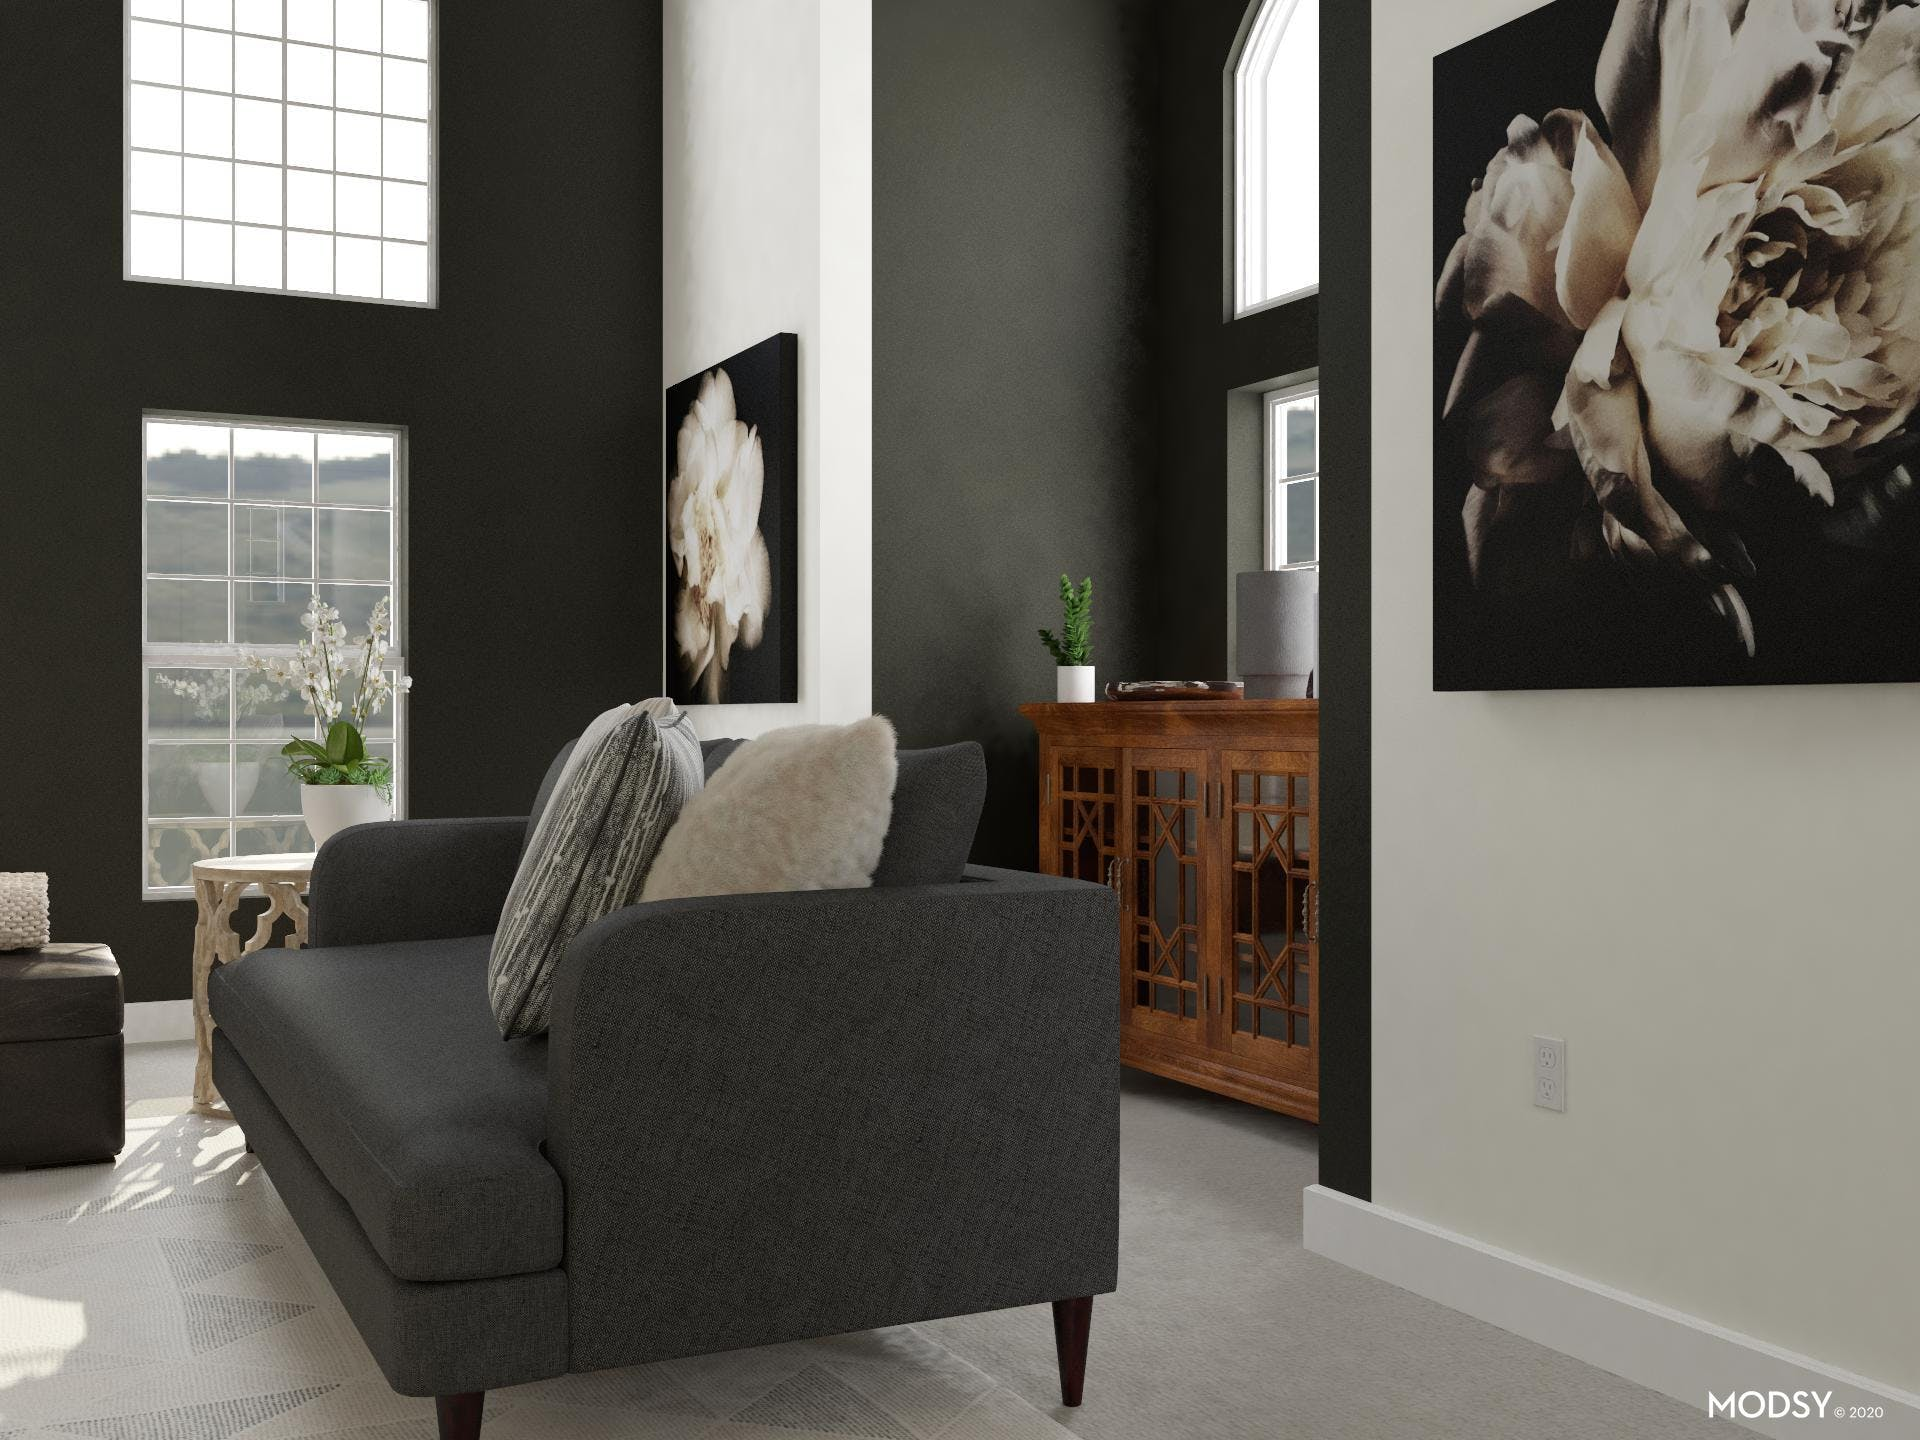 Transitional Living Room in Black and White